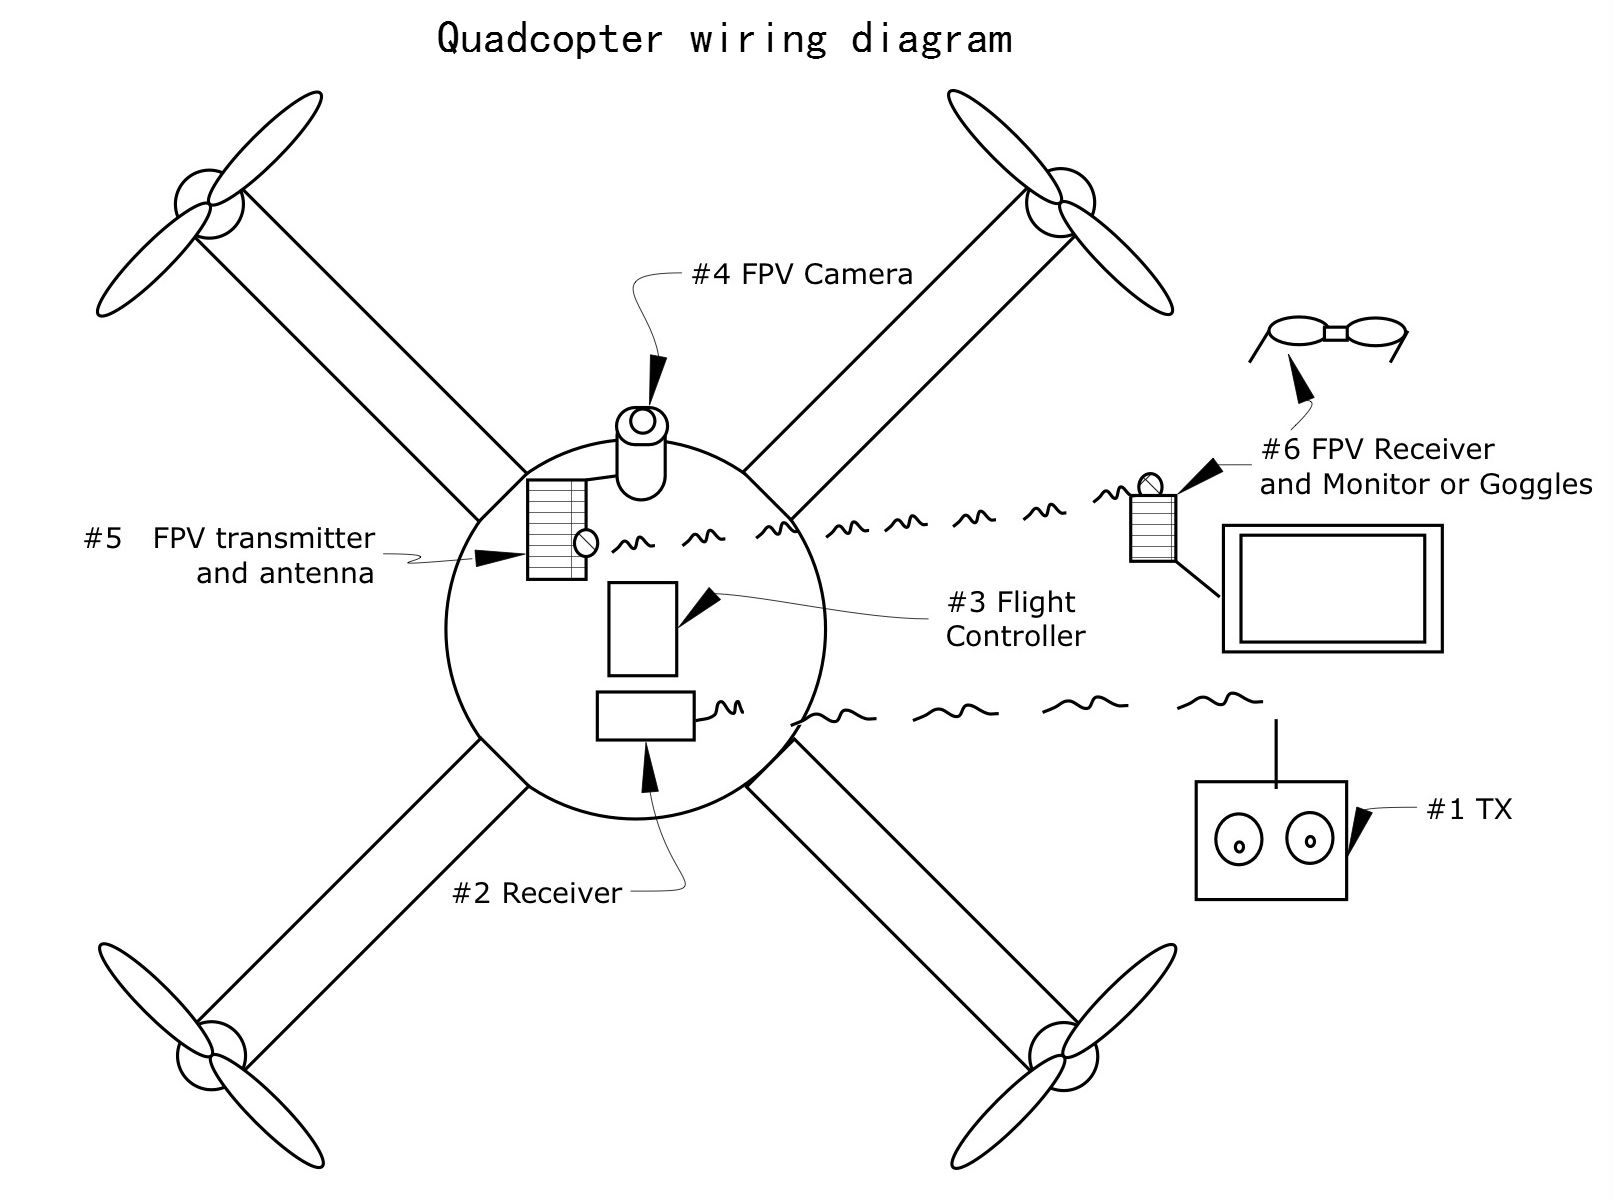 Quadcopter wiring diagram circuit diagram of drone camera circuit and schematics diagram Very Detailed Drone Diagram at reclaimingppi.co